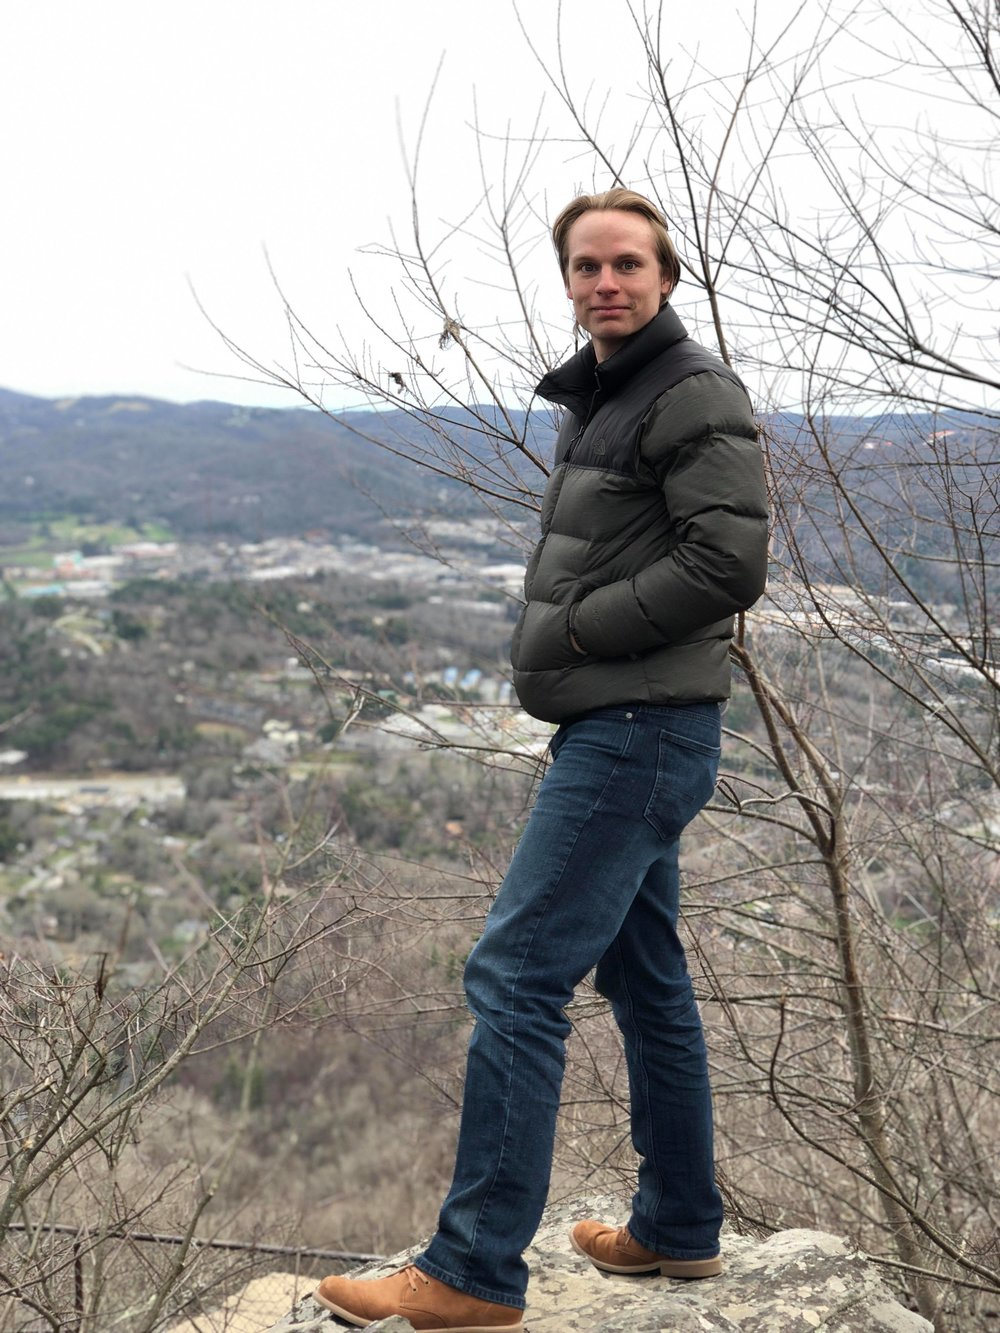 Hiking in Boone, NC after 2nd place in 2018 Appalachian Guitar Festival